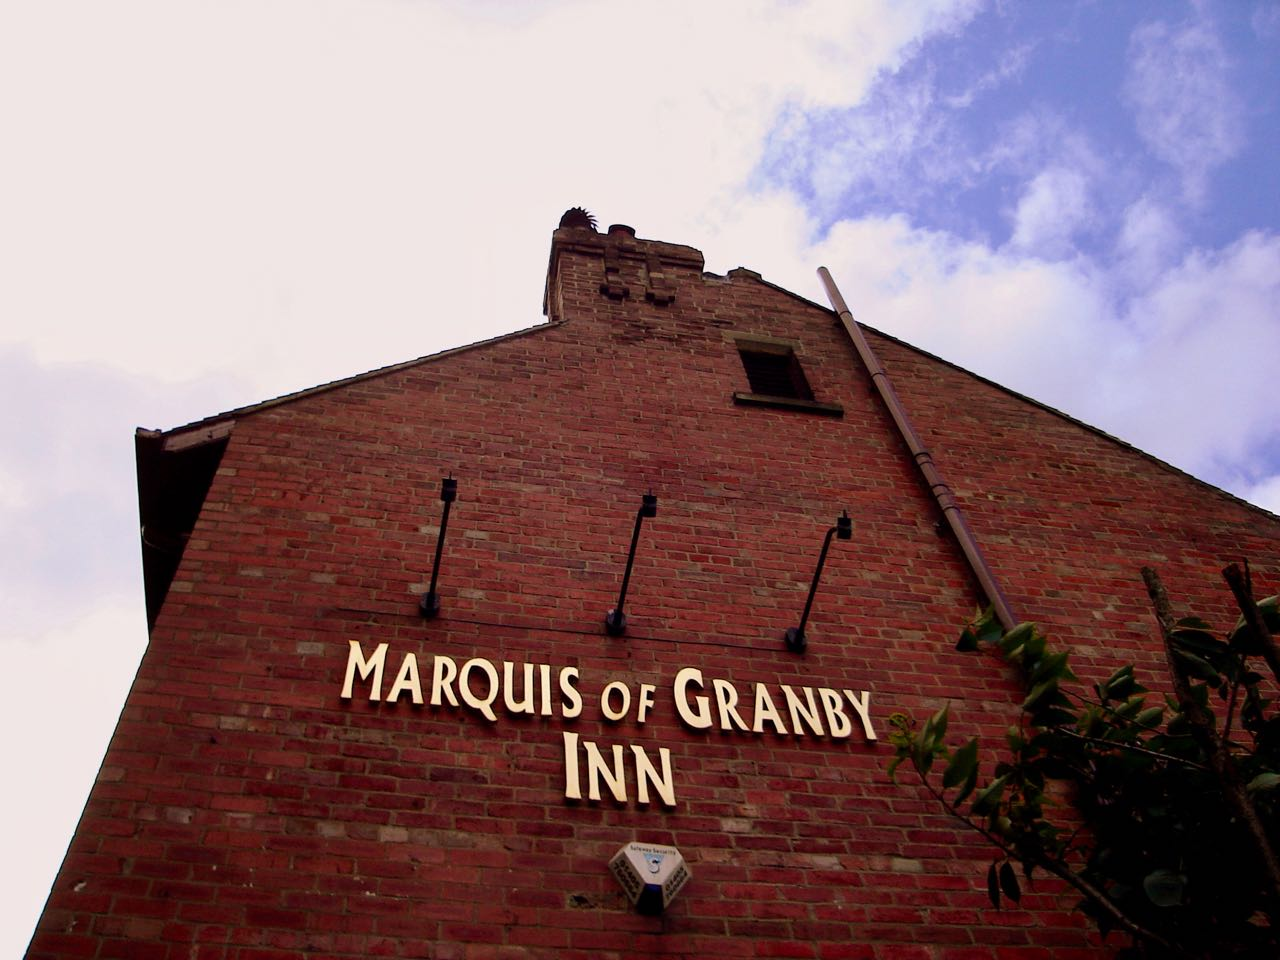 Marquis of Granby Inn - Knaresborough, UK. July 2010, Sony Cybershot DSC-S40